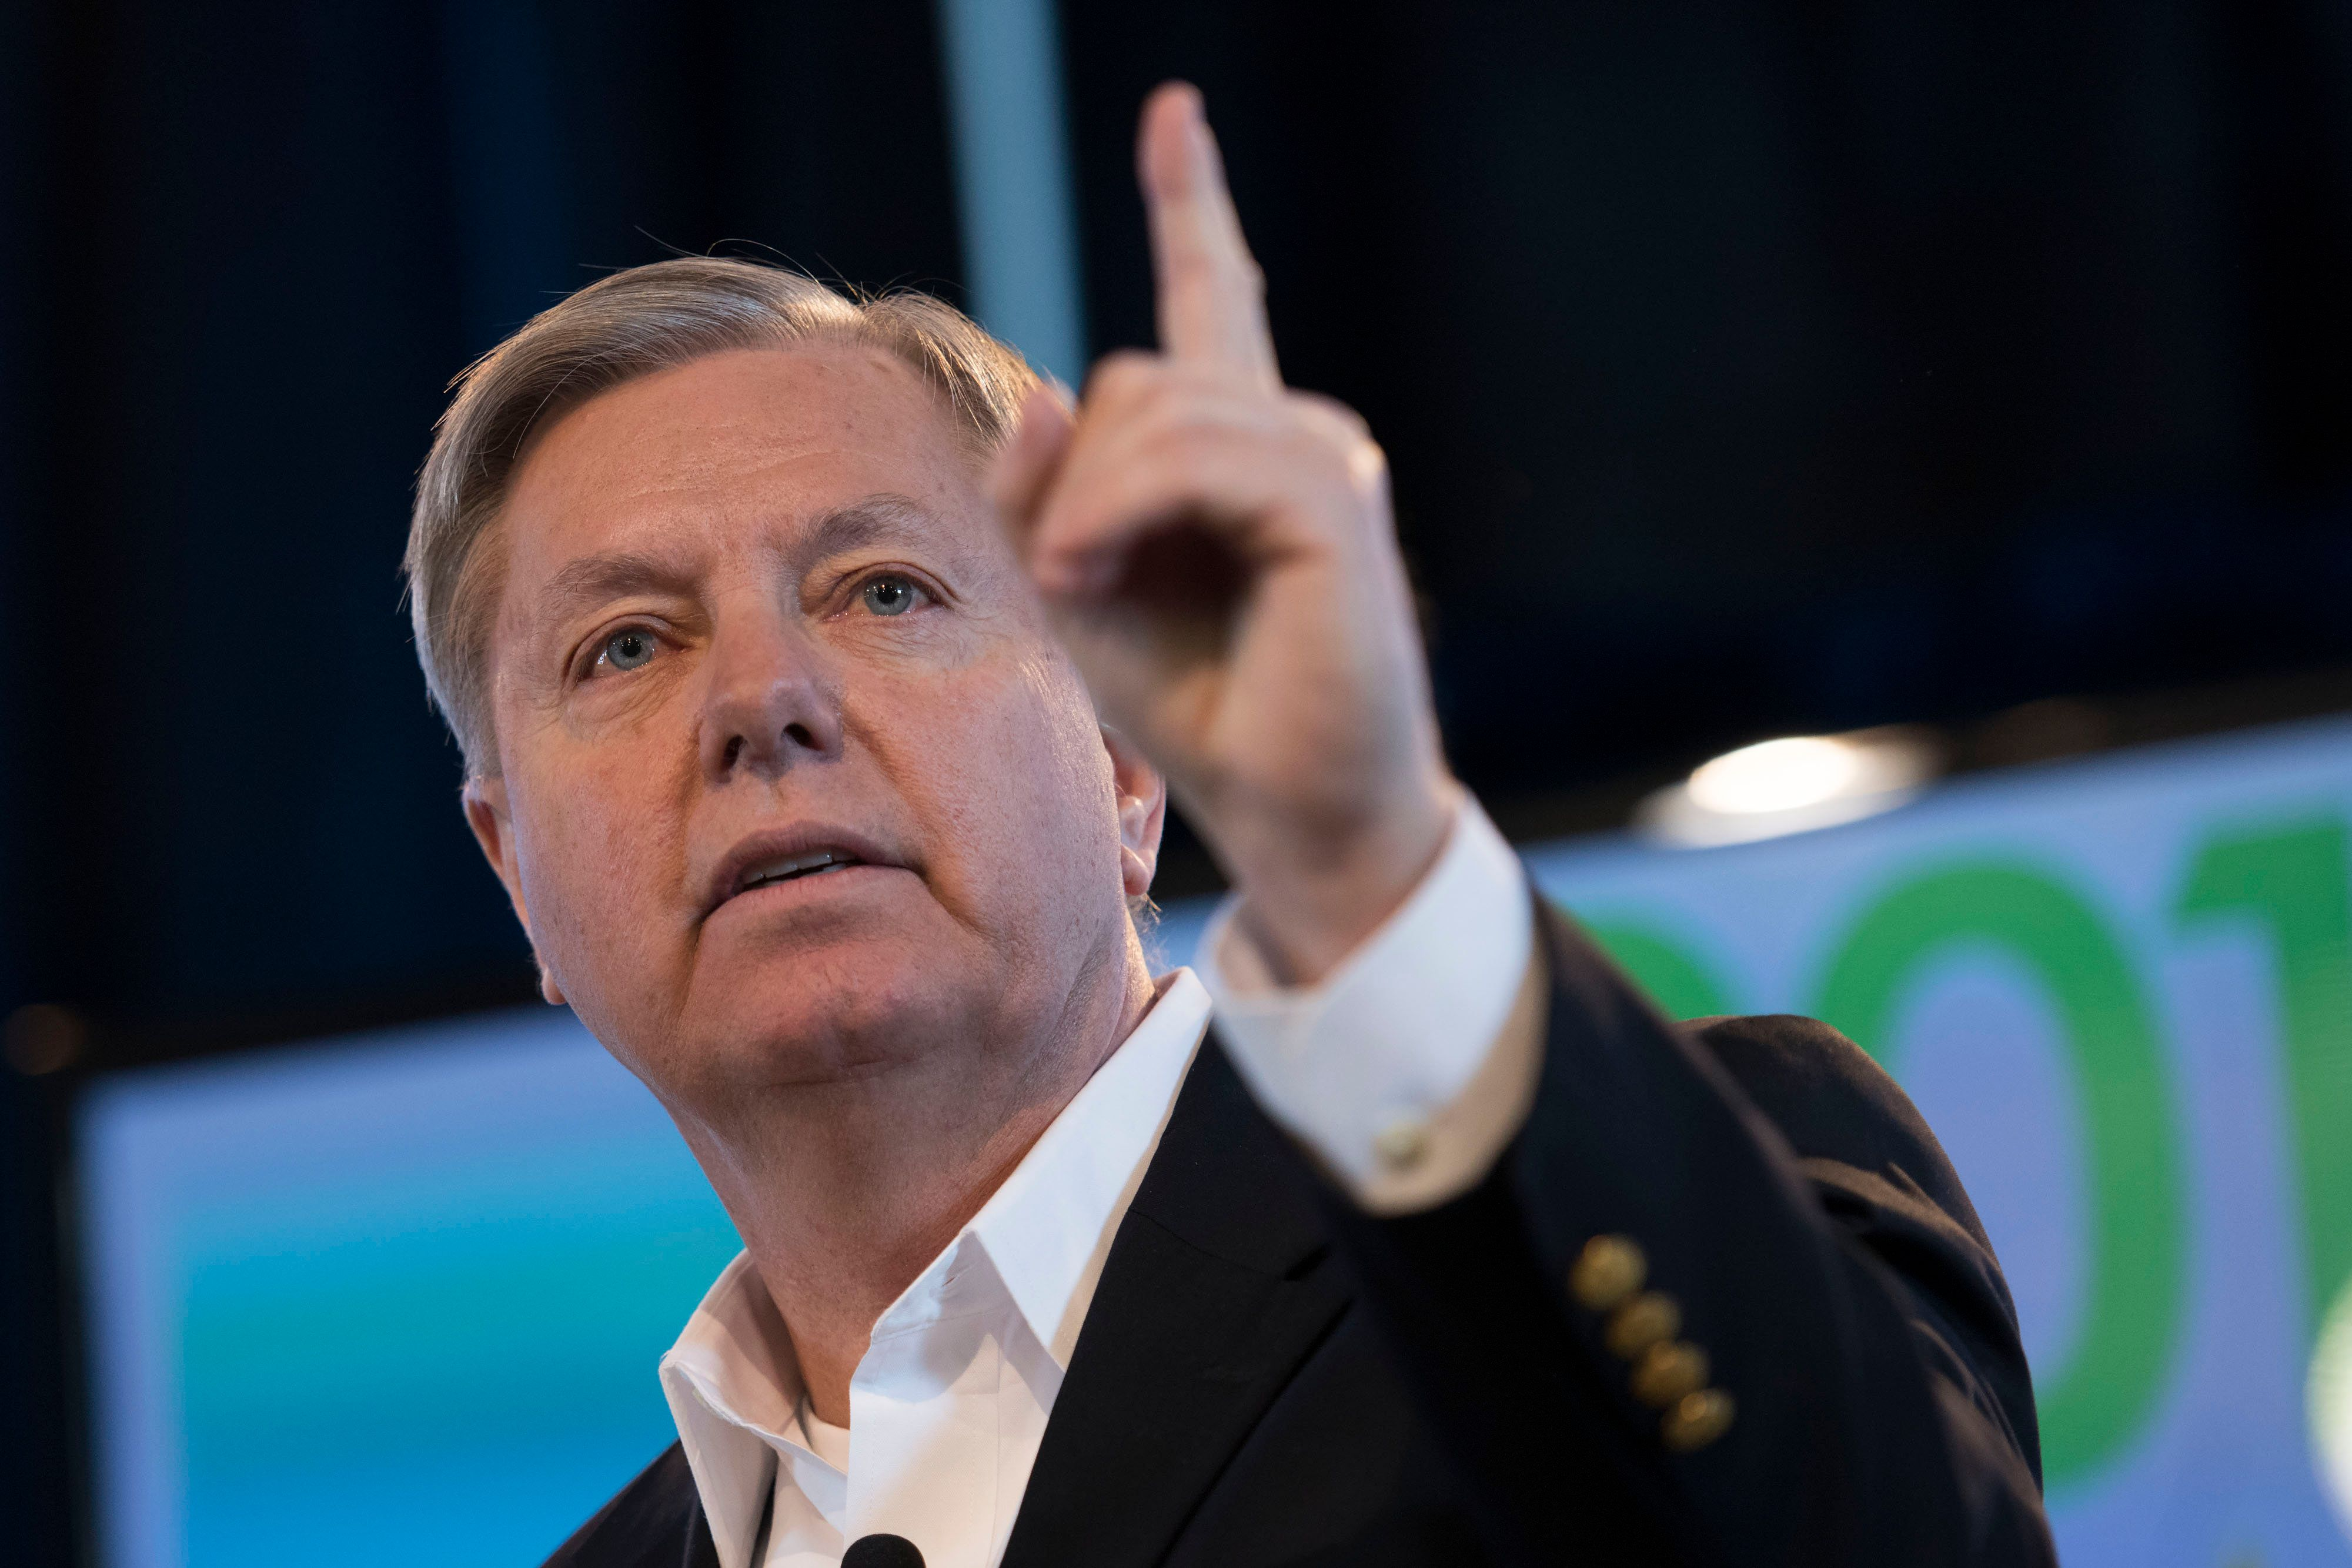 Senator Lindsay Graham, a Republican from South Carolina, speaks during the Iowa Ag Summit at the Iowa State Fairgrounds in Des Moines, Iowa, U.S., on Saturday, March 7, 2015. The event aims to highlight the role that agriculture plays in Iowa and the rest of the world. Photographer: Daniel Acker/Bloomberg via Getty Images